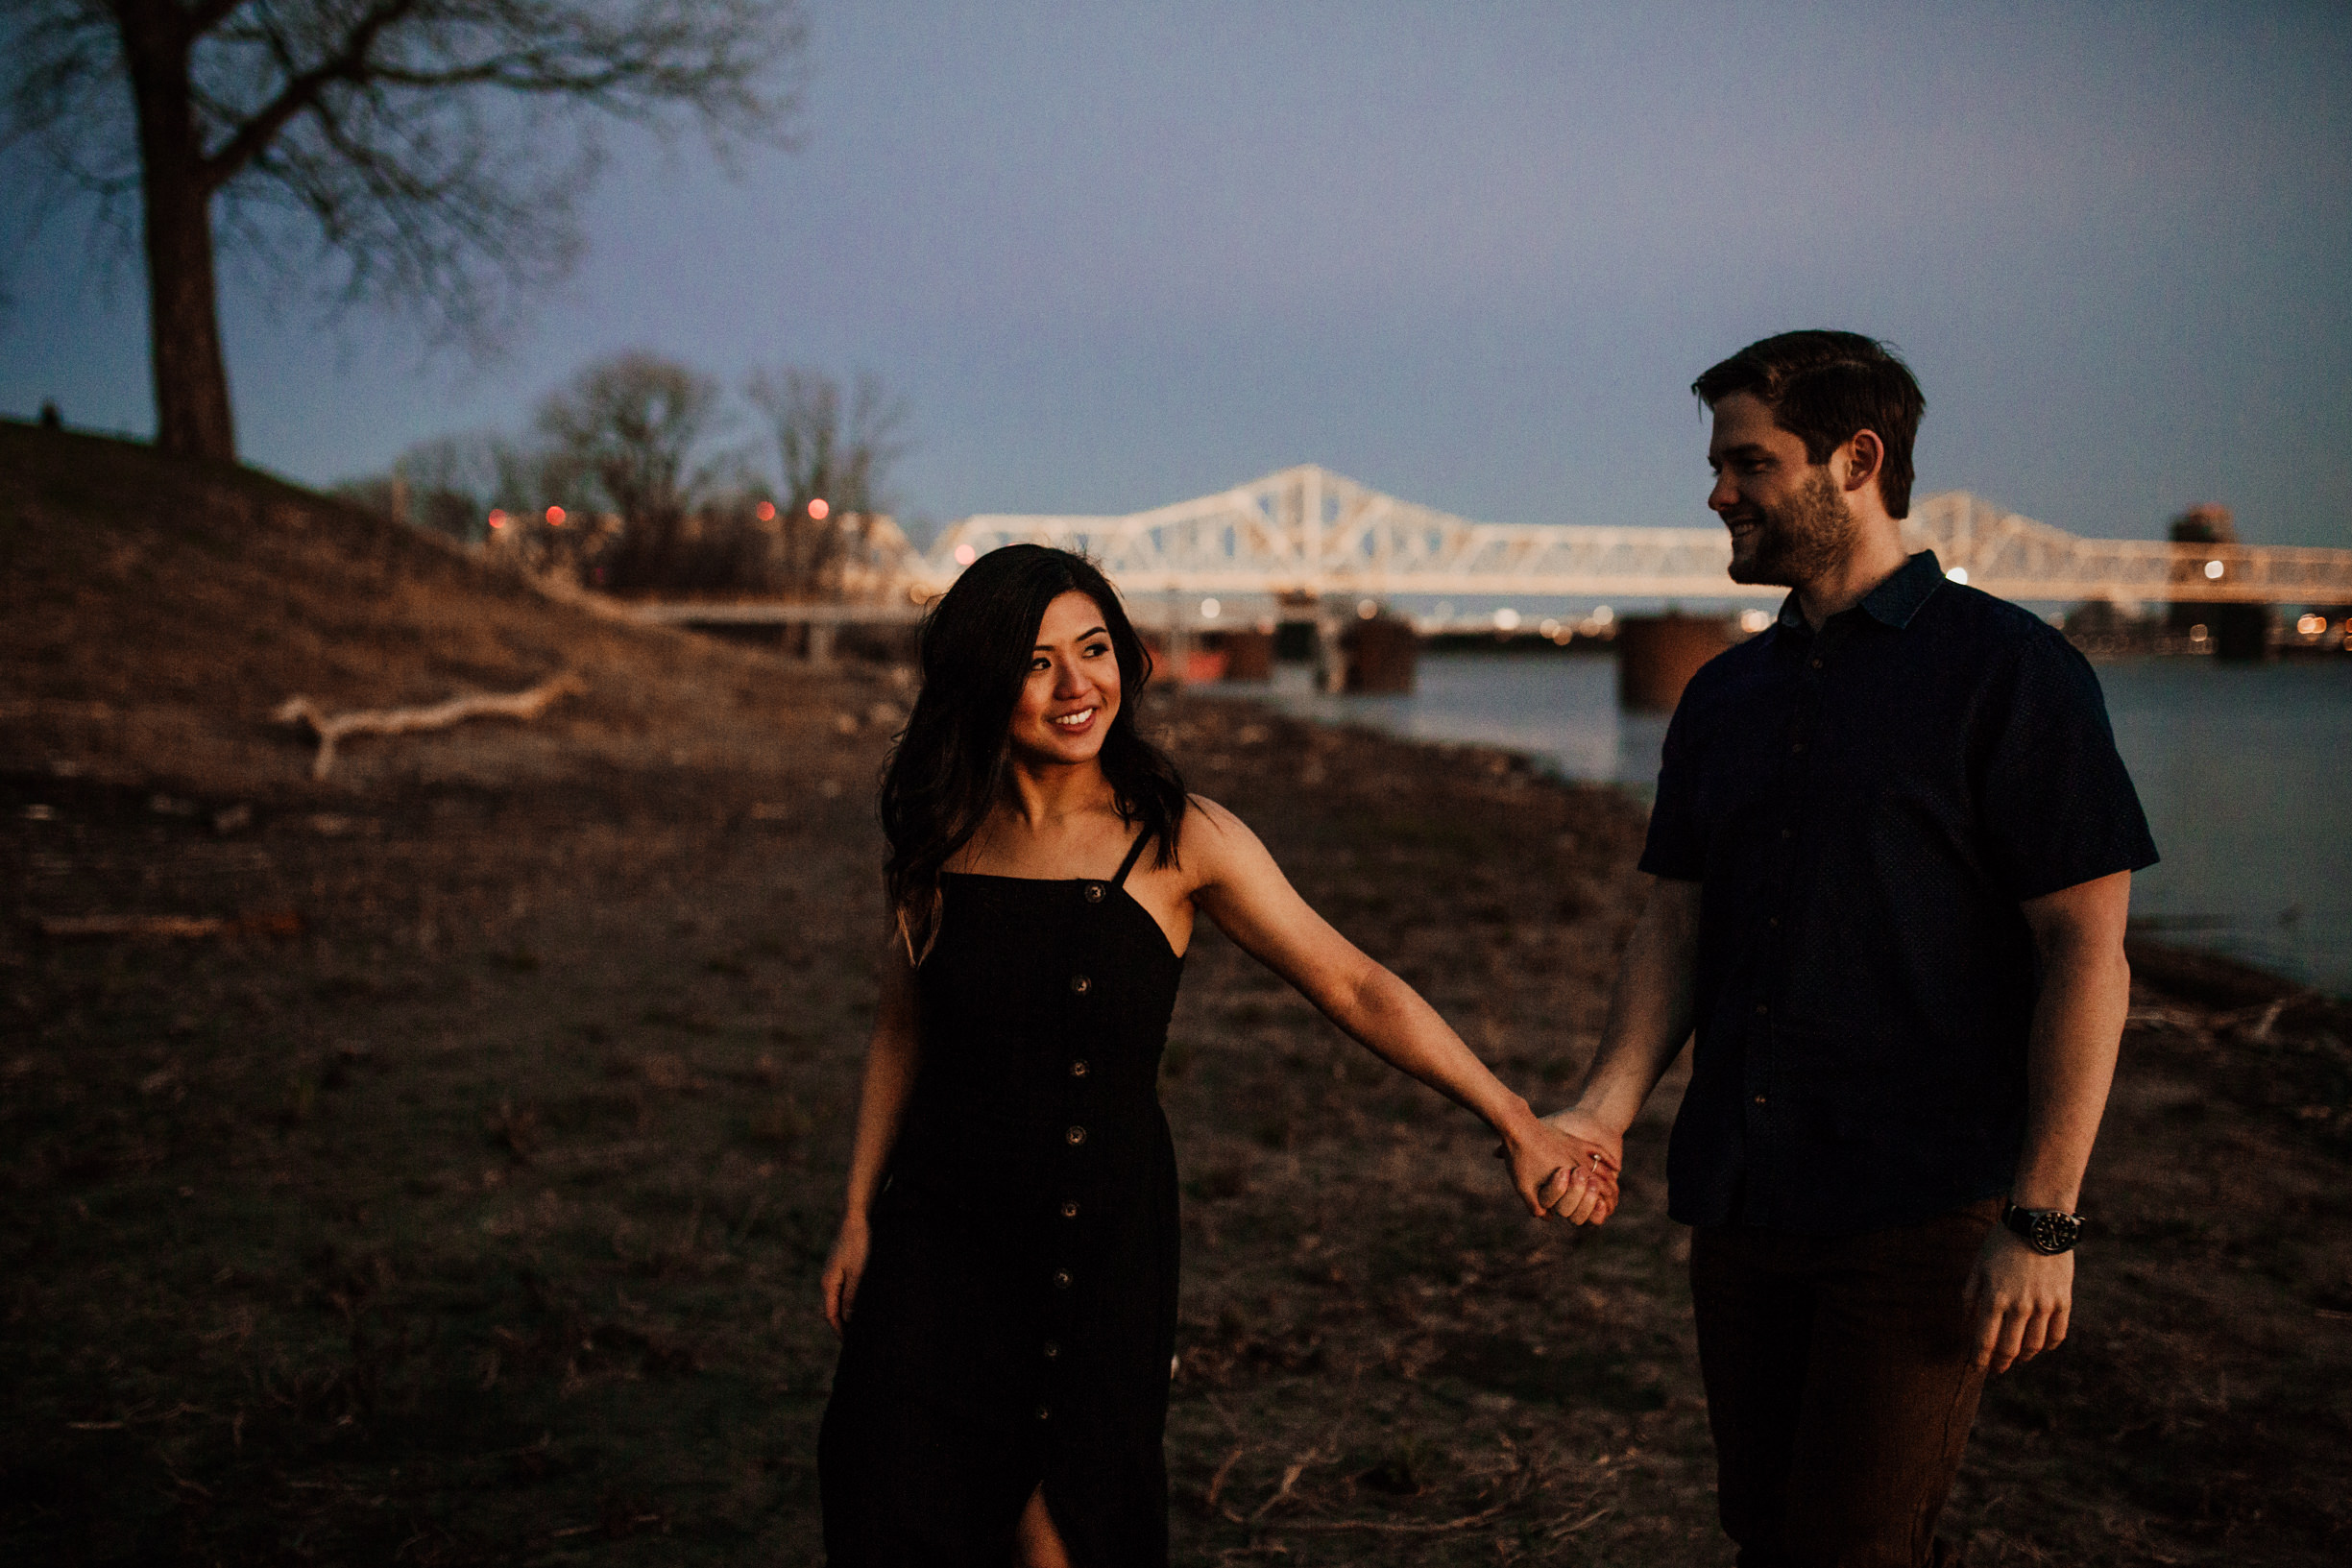 louisville-engagement-photographer-crystal-ludwick-photo-tammy-and-caleb-engagement-photography (32 of 32).jpg